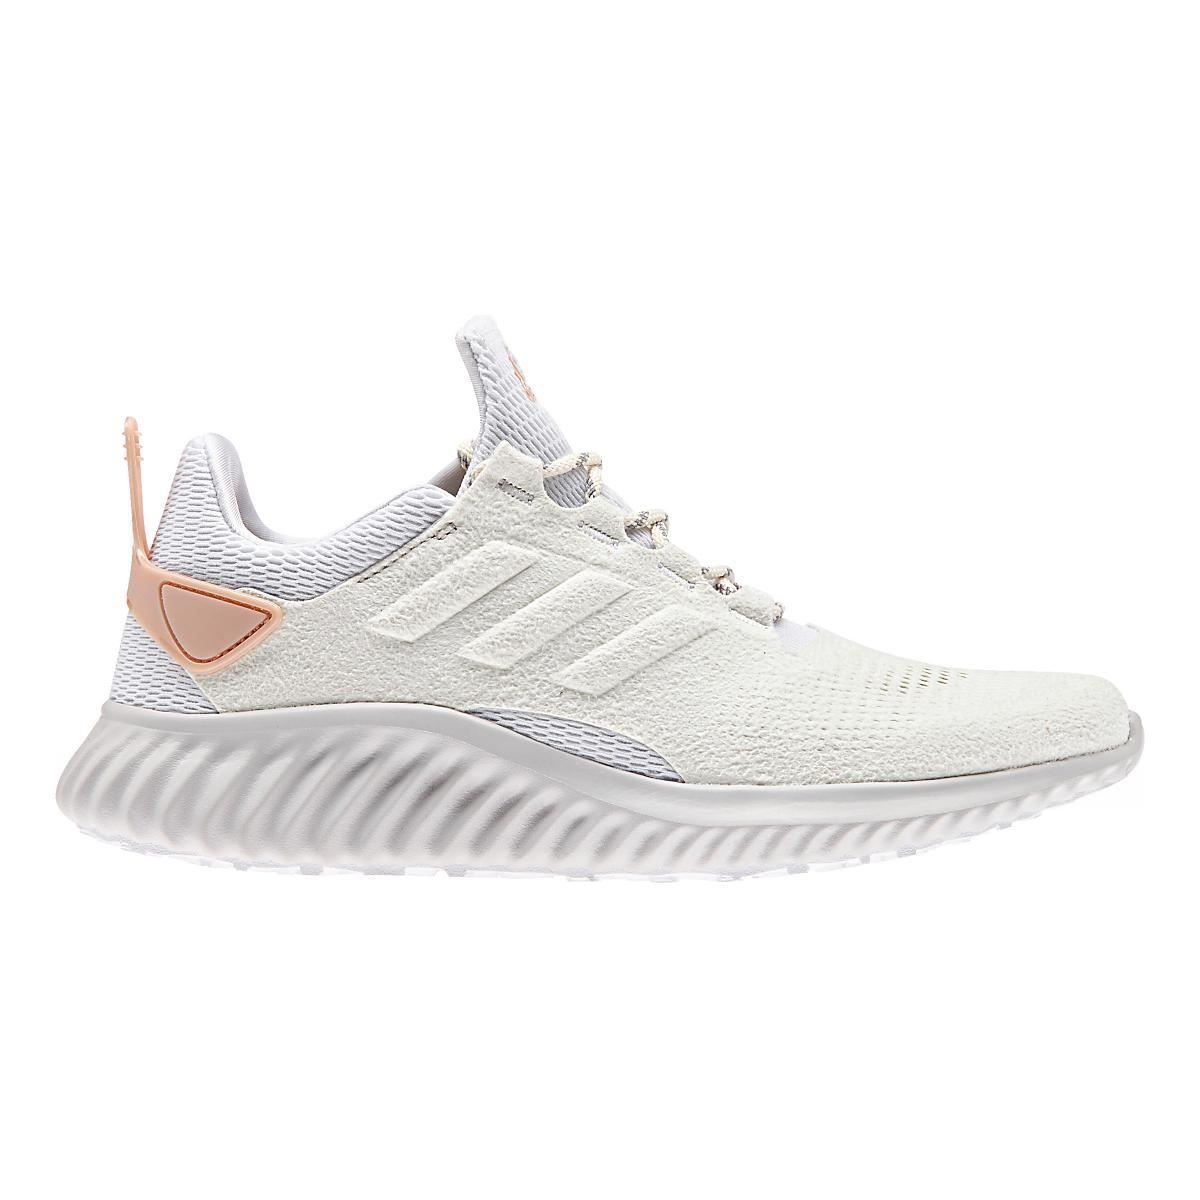 0fde38964a720 Womens adidas alphabounce city run Running Shoe at Road Runner Sports